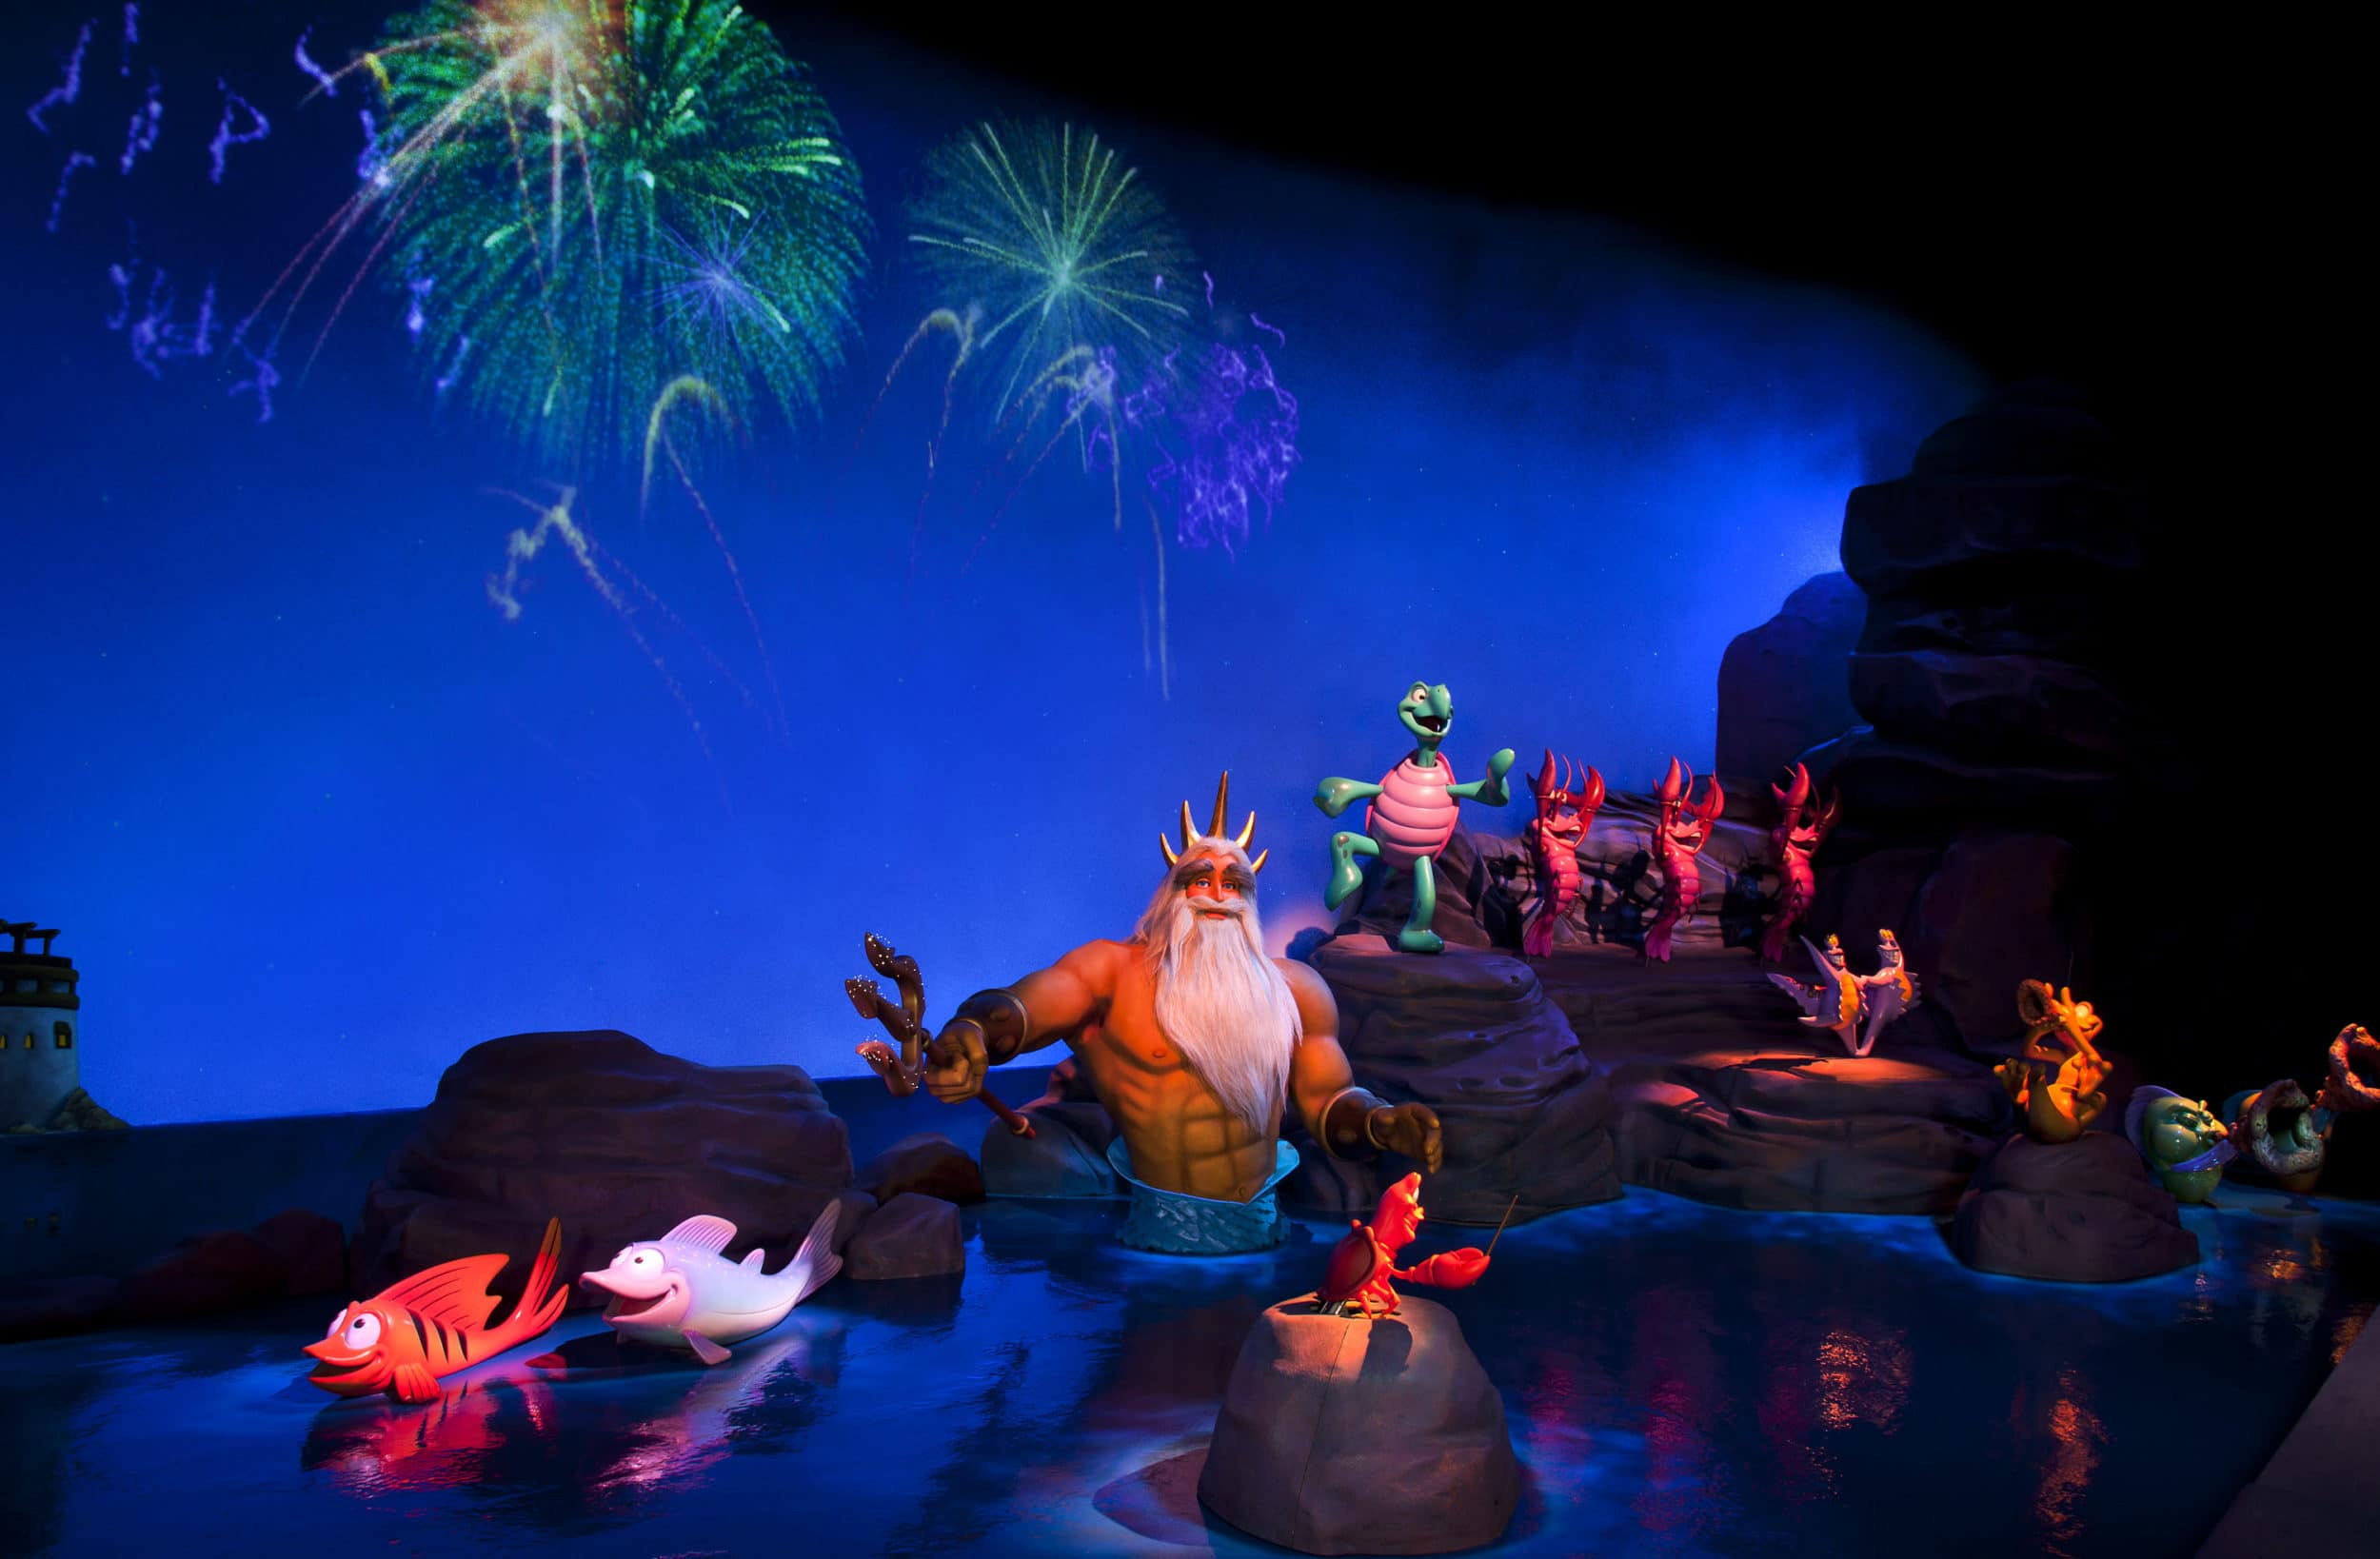 Disney California Adventure: The Little Mermaid ~ Ariel's Undersea Adventure, Happily Ever After scene with King Triton